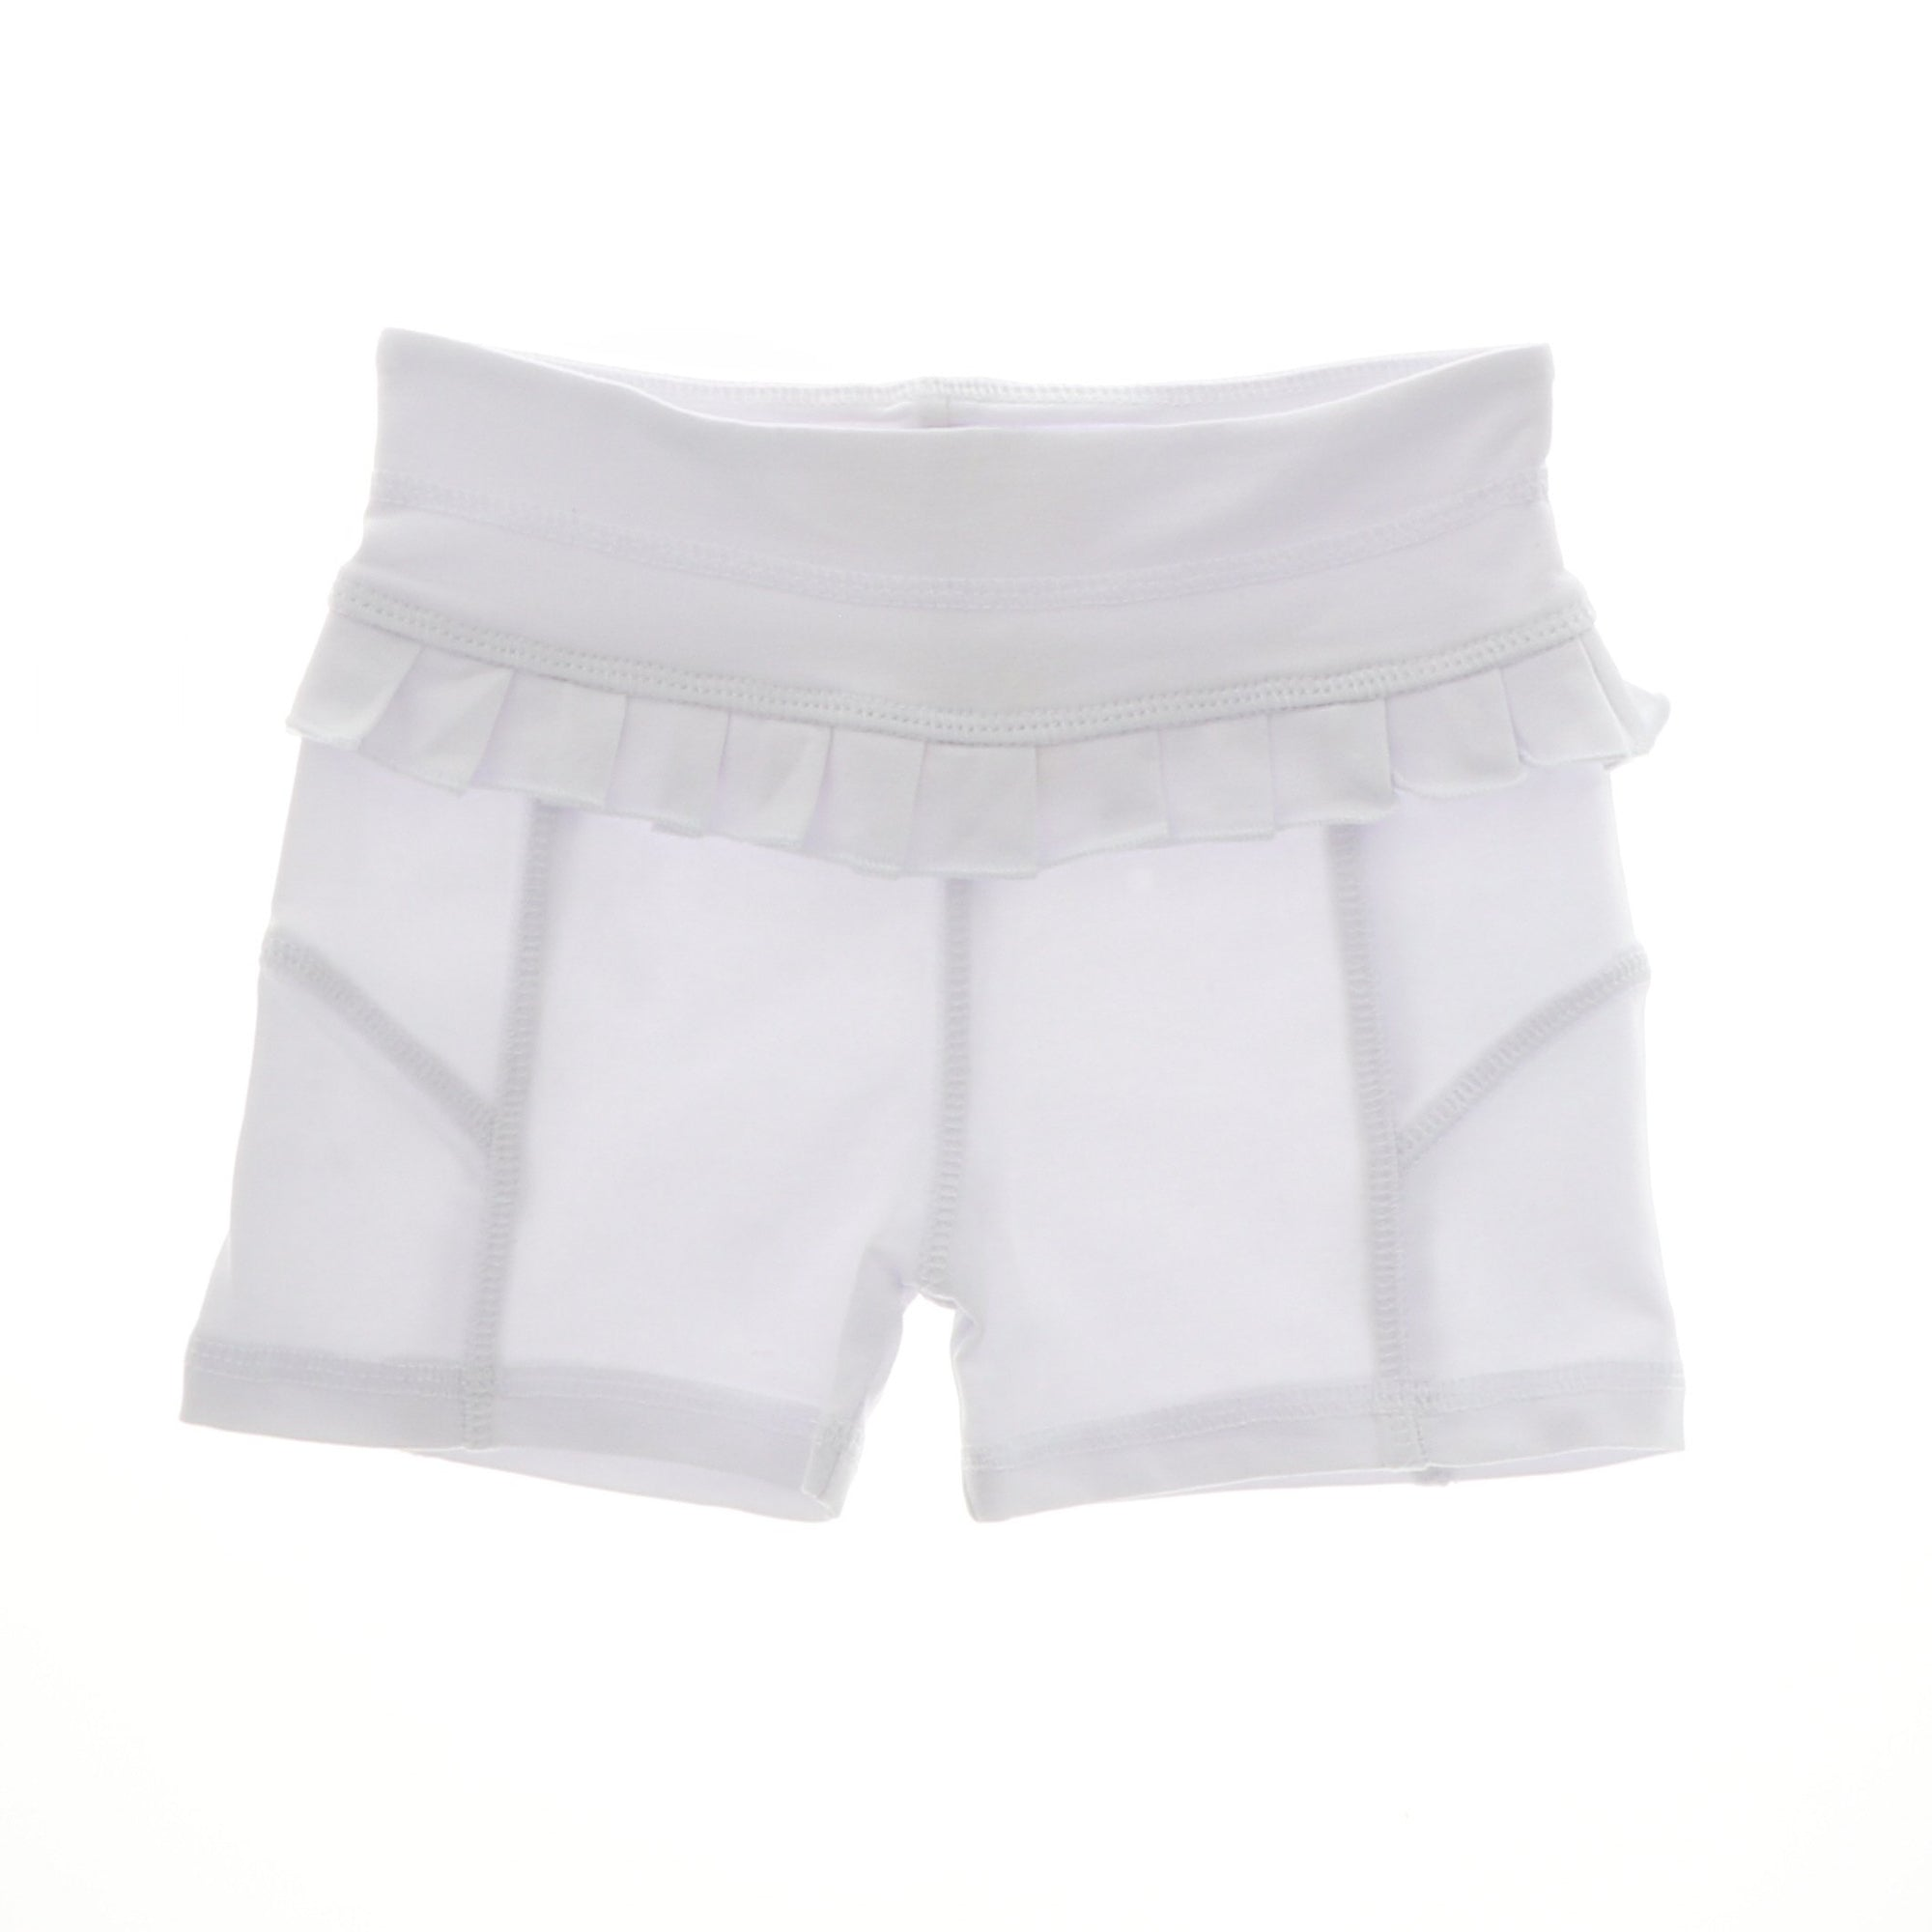 Sassy Shorts - Adorable Essentials